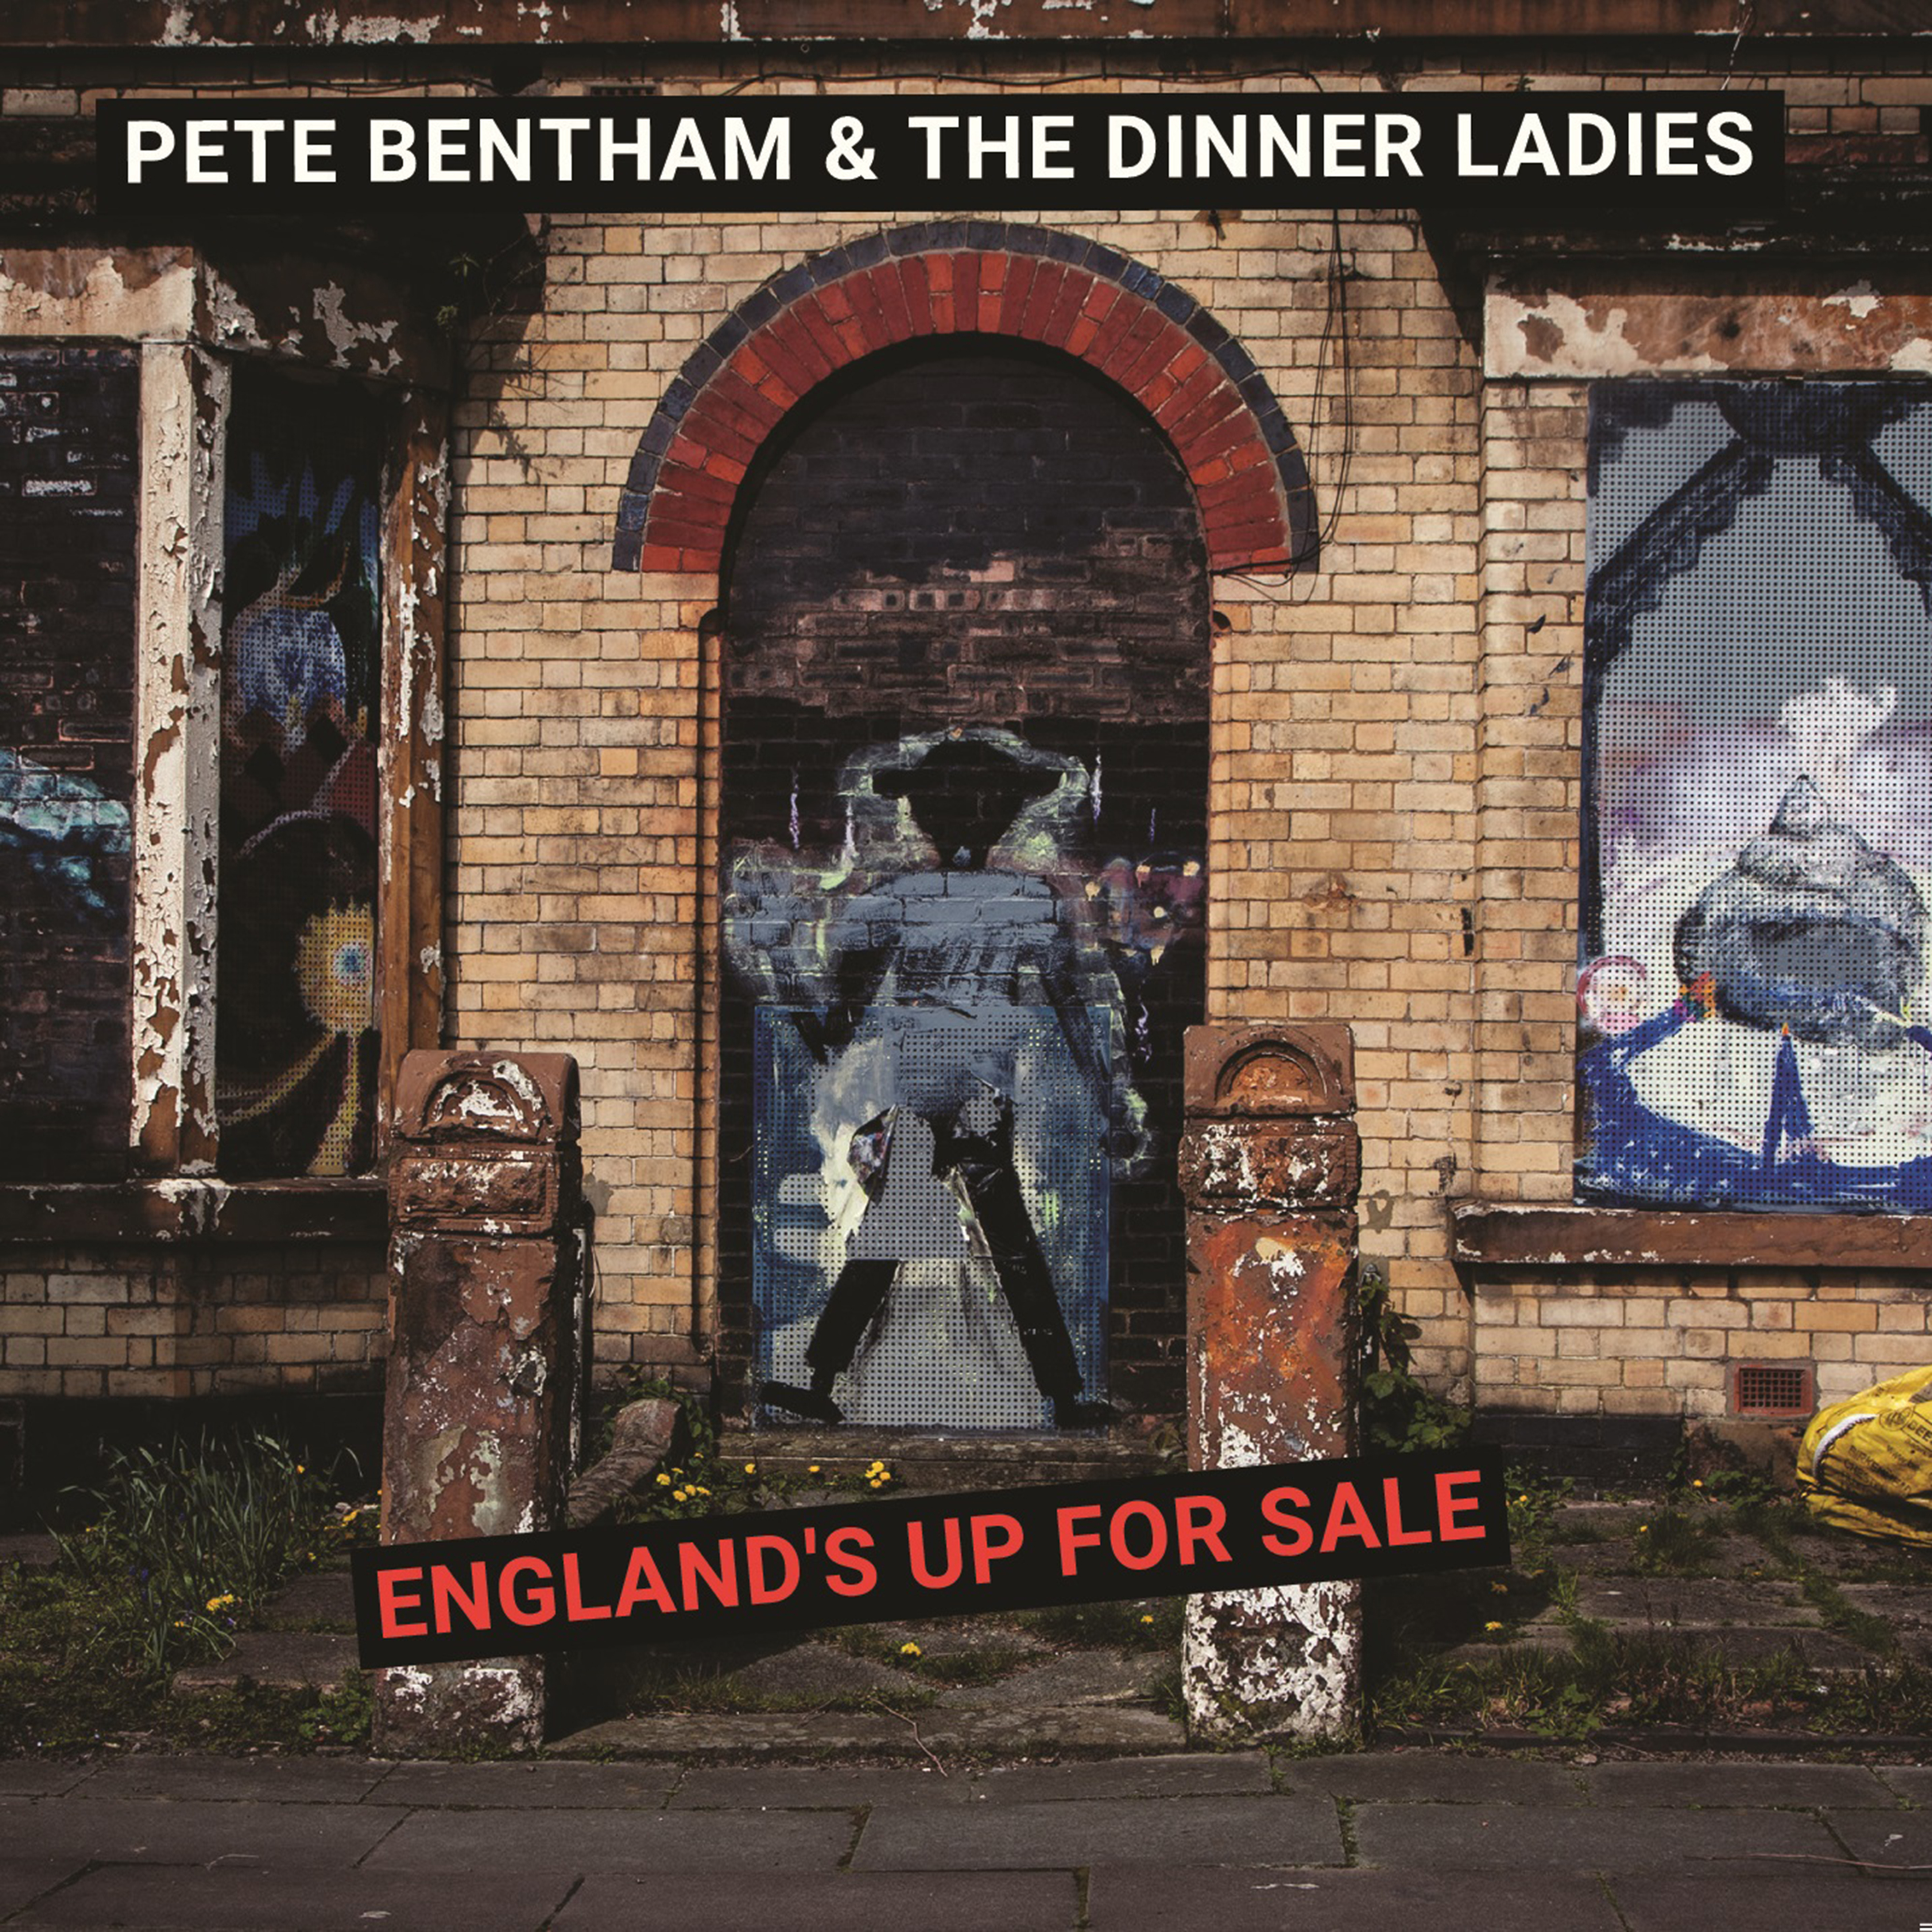 Pete Bentham and The Dinner Ladies - England's Up for Sale